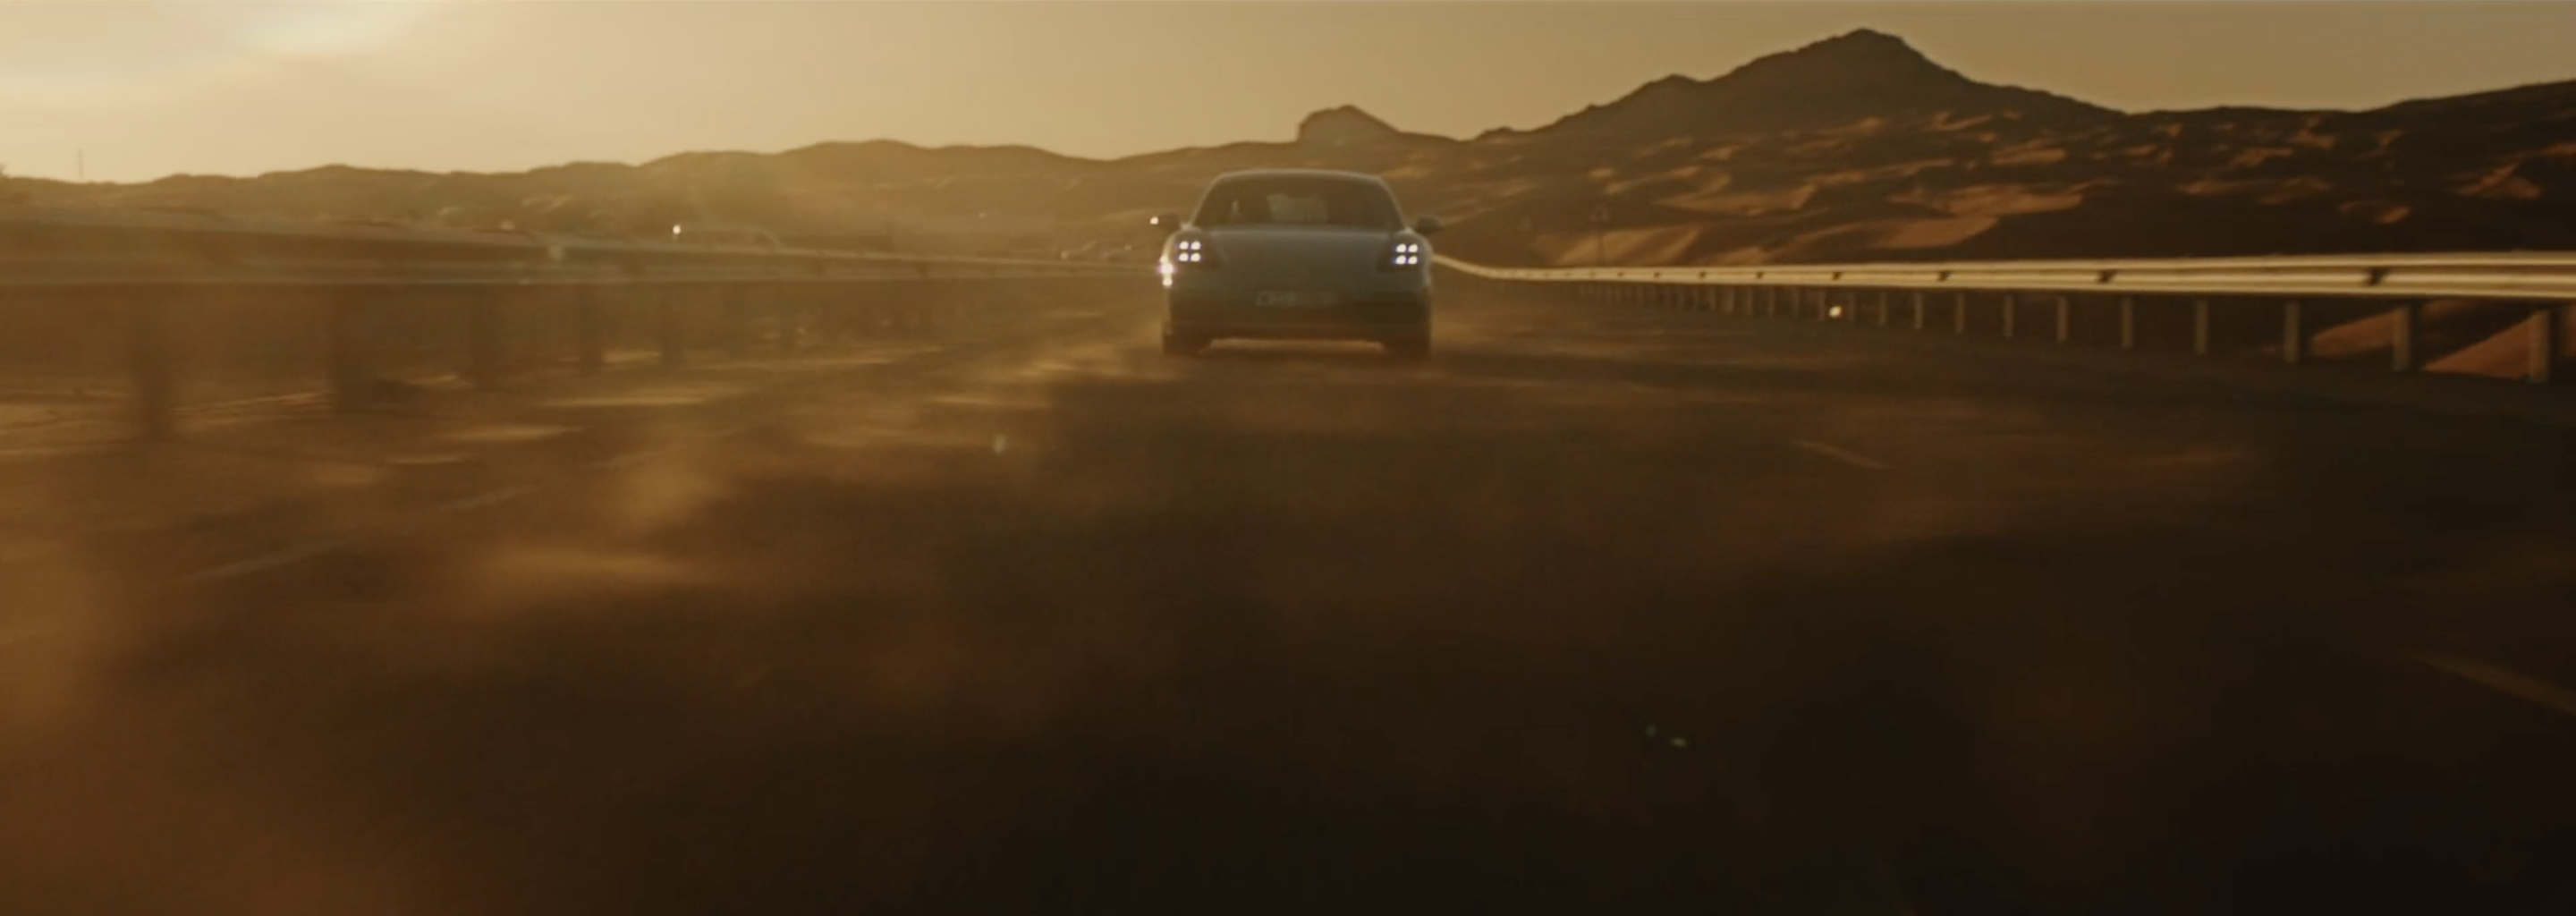 DDB and electriclimefilms Join to Produce Four Mesmerising Films for Porsche